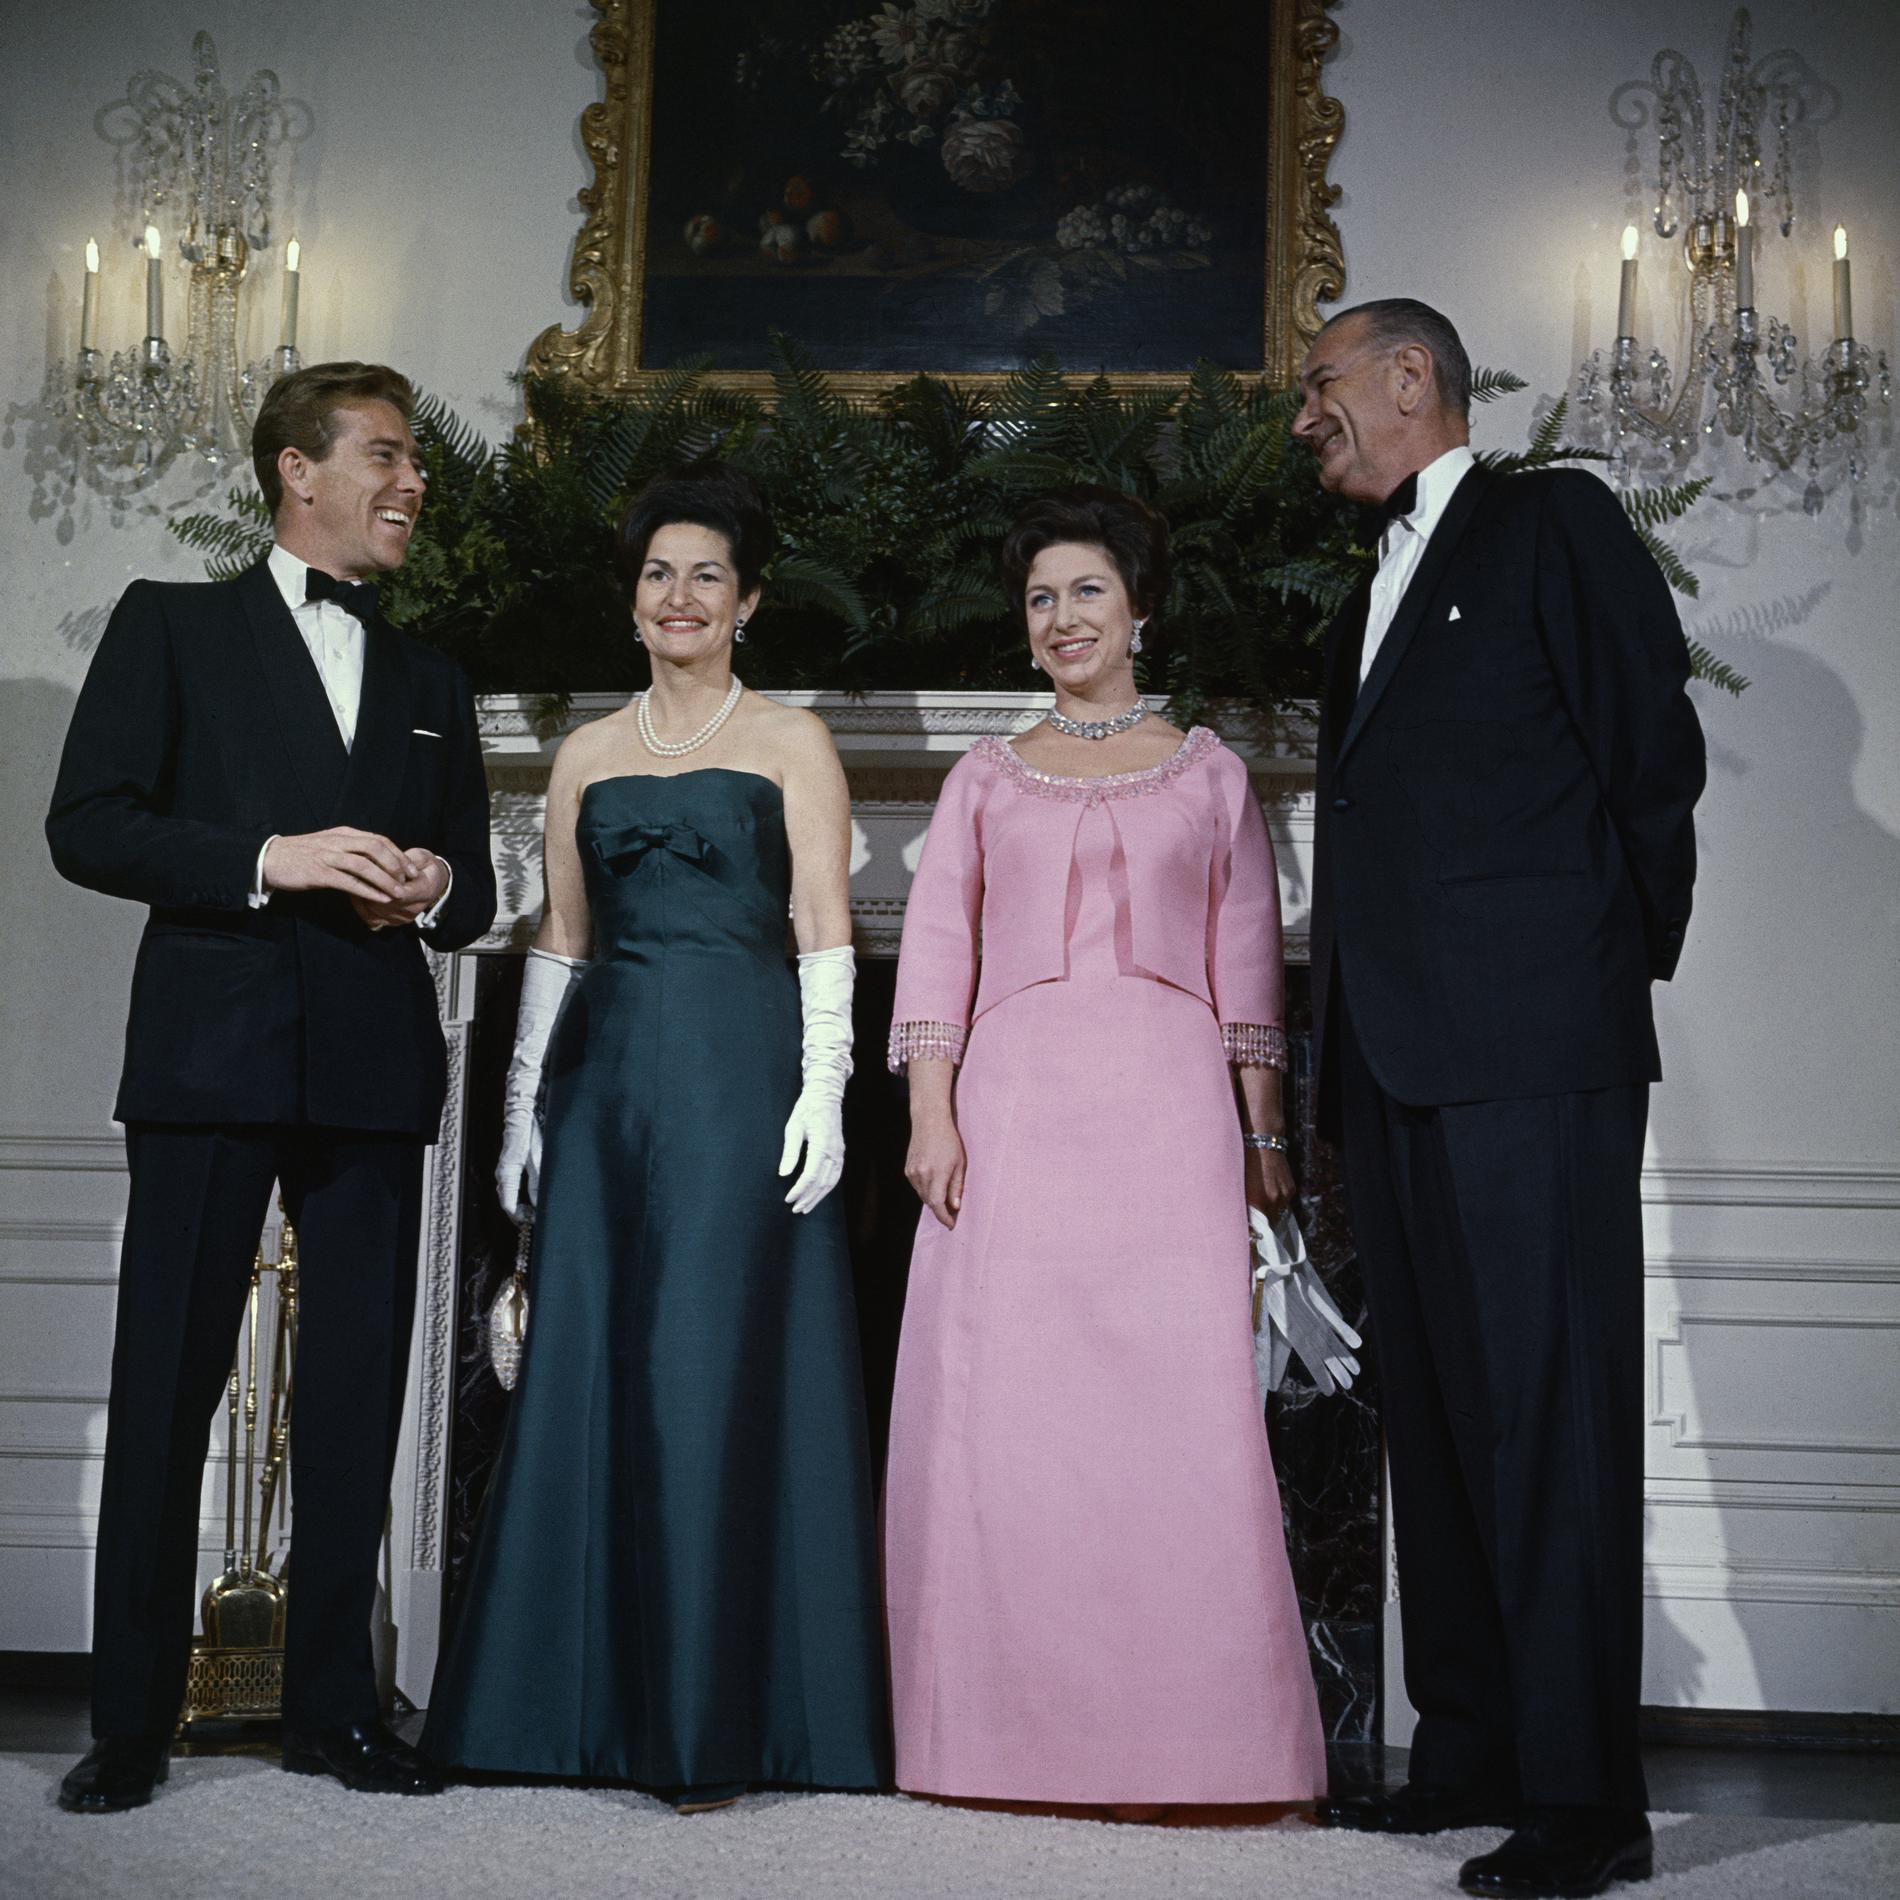 La princesse Margaret, Lord Snowden et le couple Johnson à la Maison-Blanche